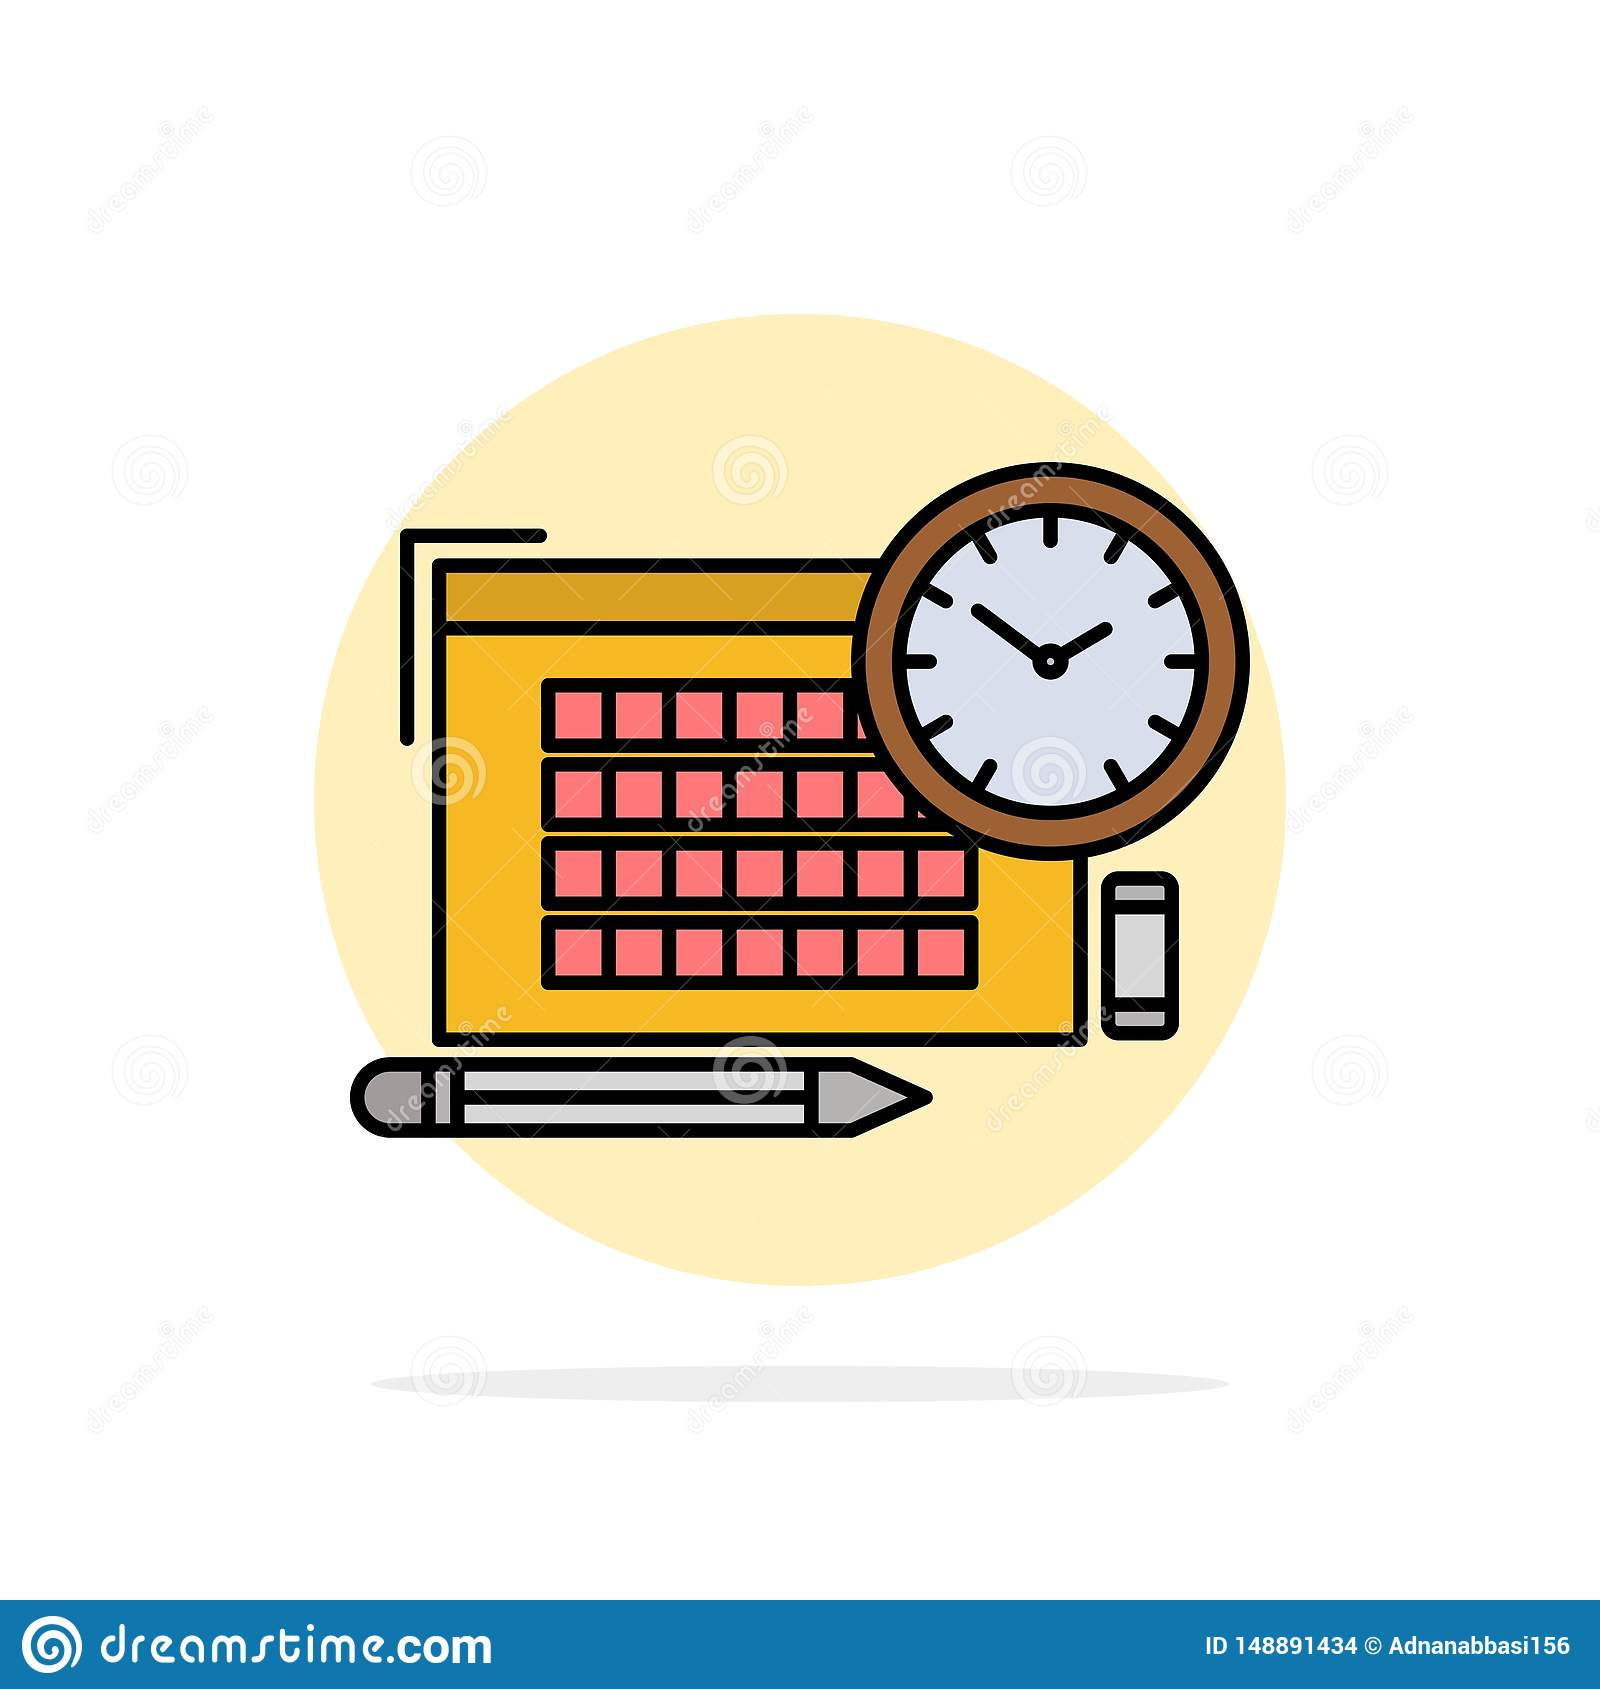 Time, File, Pen, Focus Abstract Circle Background Flat color Icon